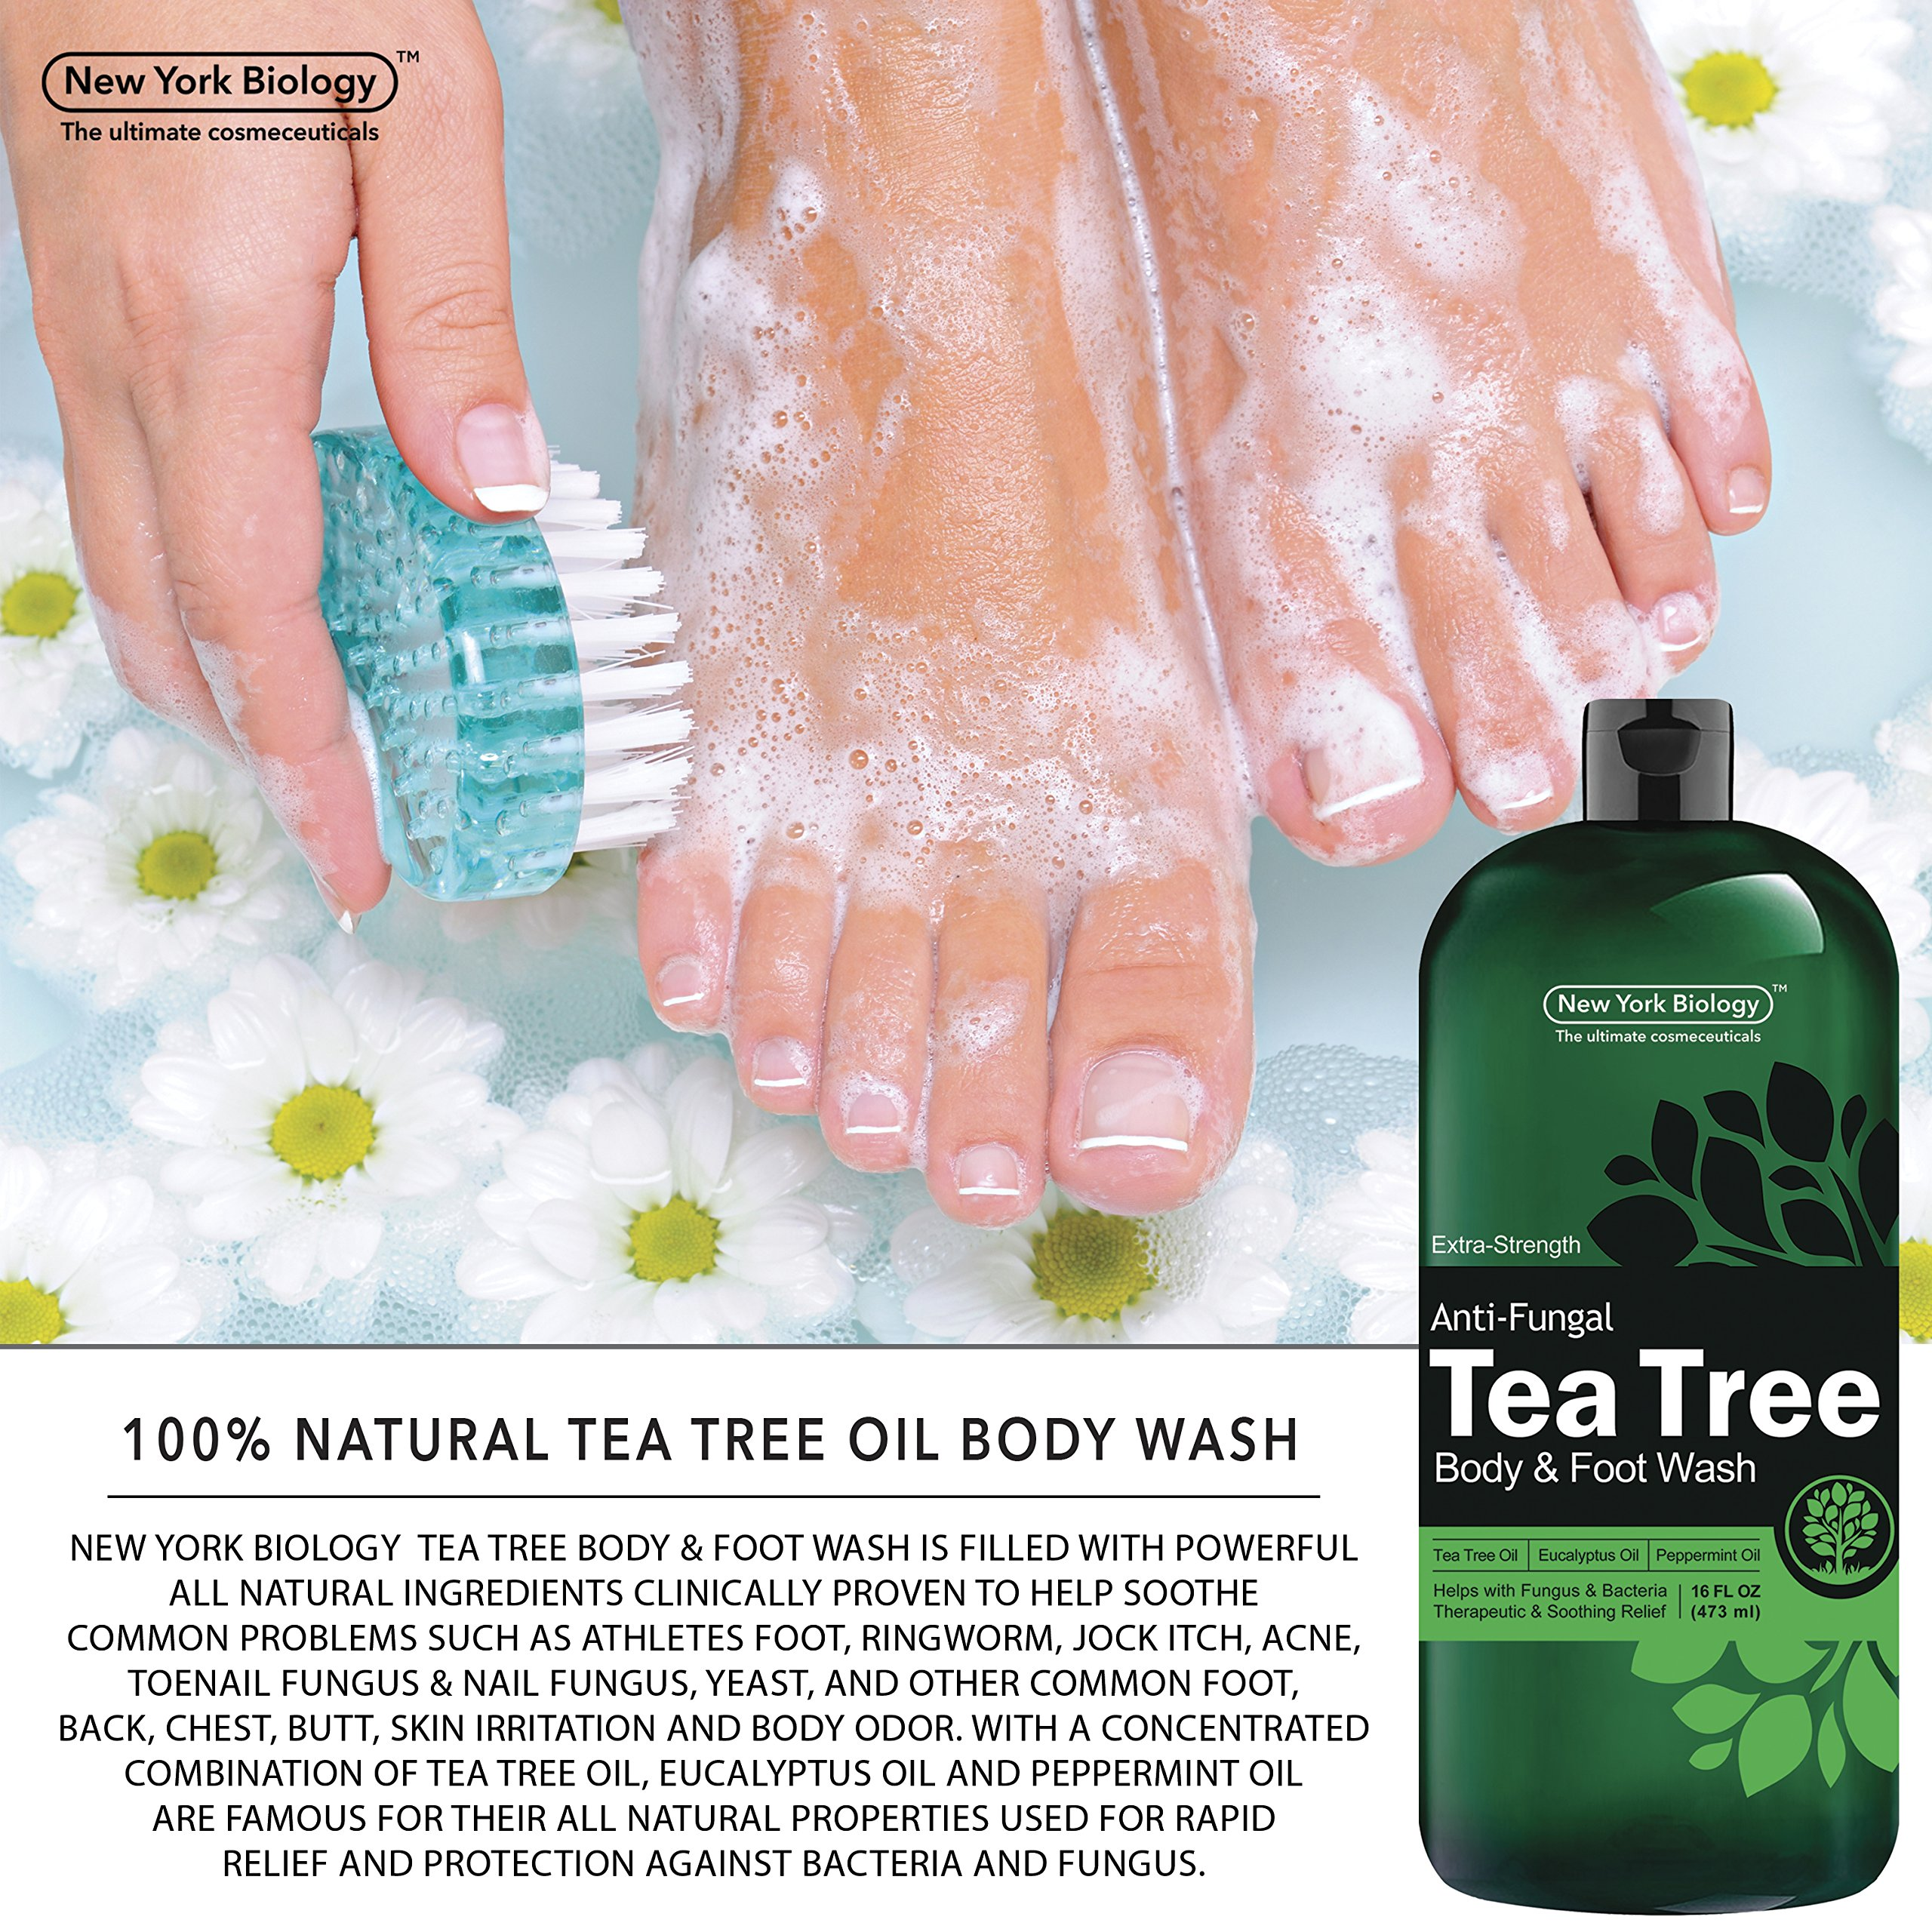 Antifungal Tea Tree Oil Body Wash – HUGE 16 OZ – 100% Pure & Natural - Extra Strength Professional Grade - Helps Soothe Toenail Fungus, Athlete Foot, Body Itch, Jock Itch & Eczema by New York Biology (Image #6)